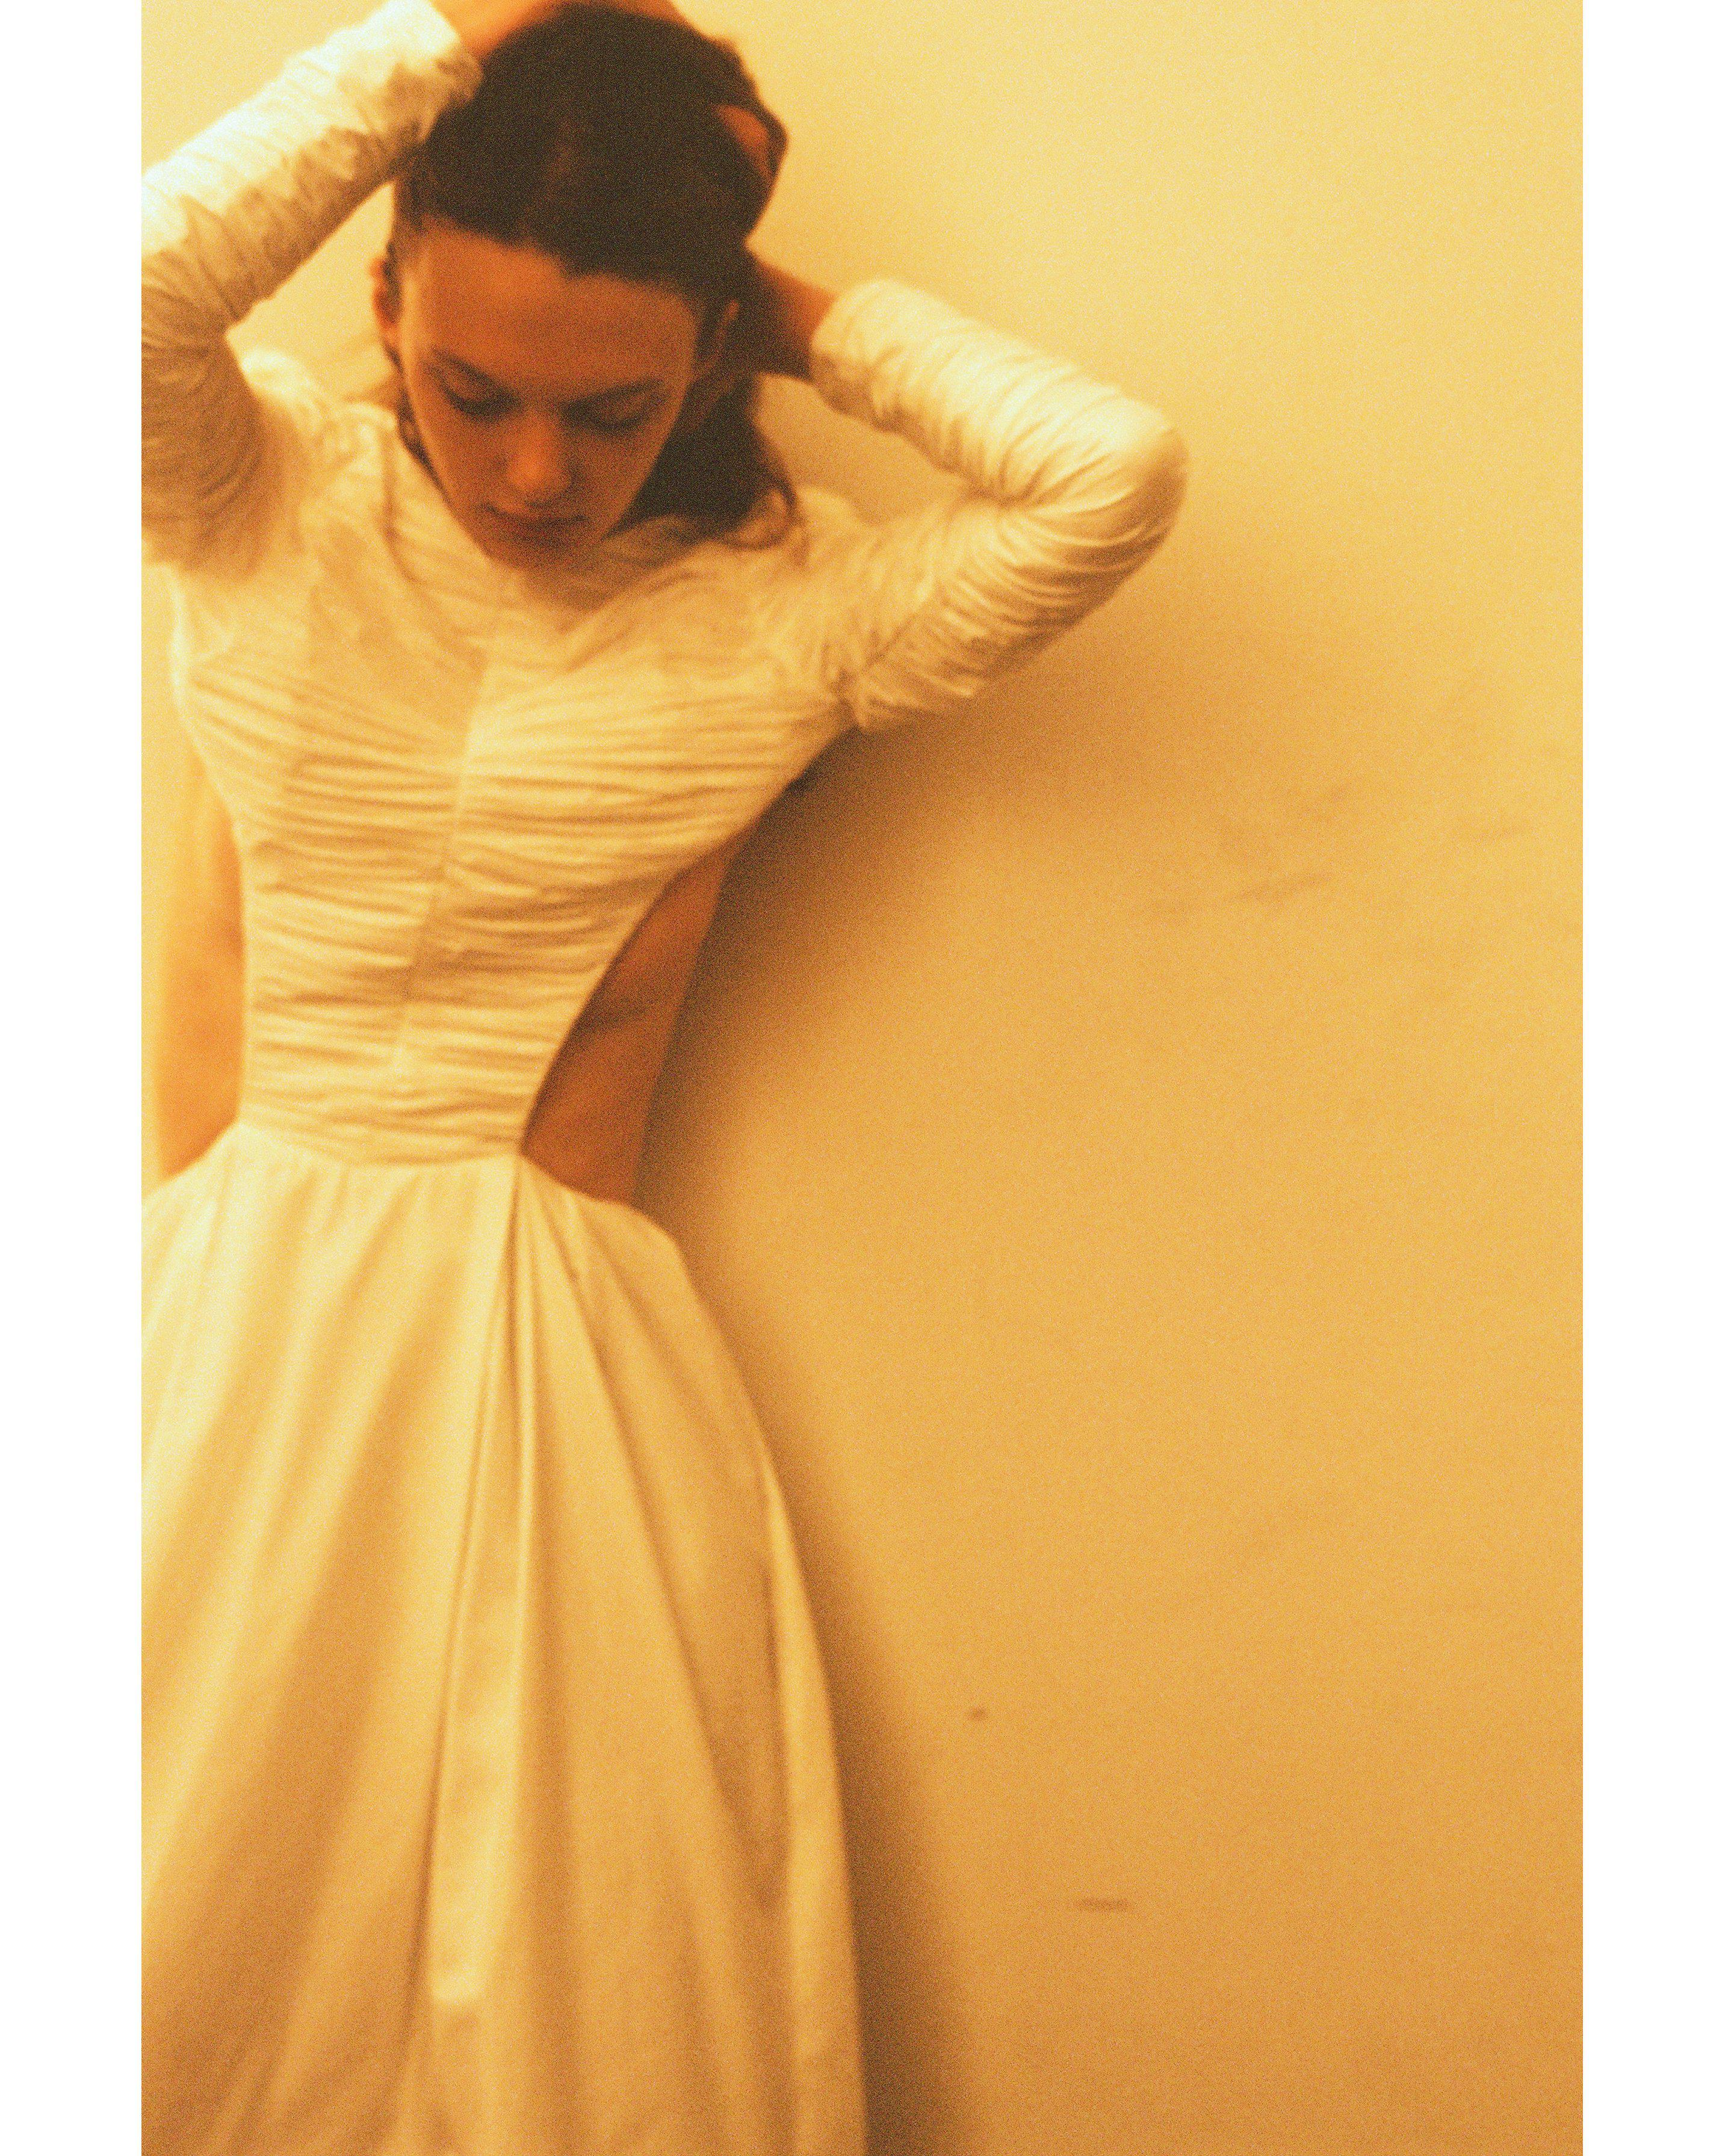 The Rosaline Dress with Petticoat in White 3